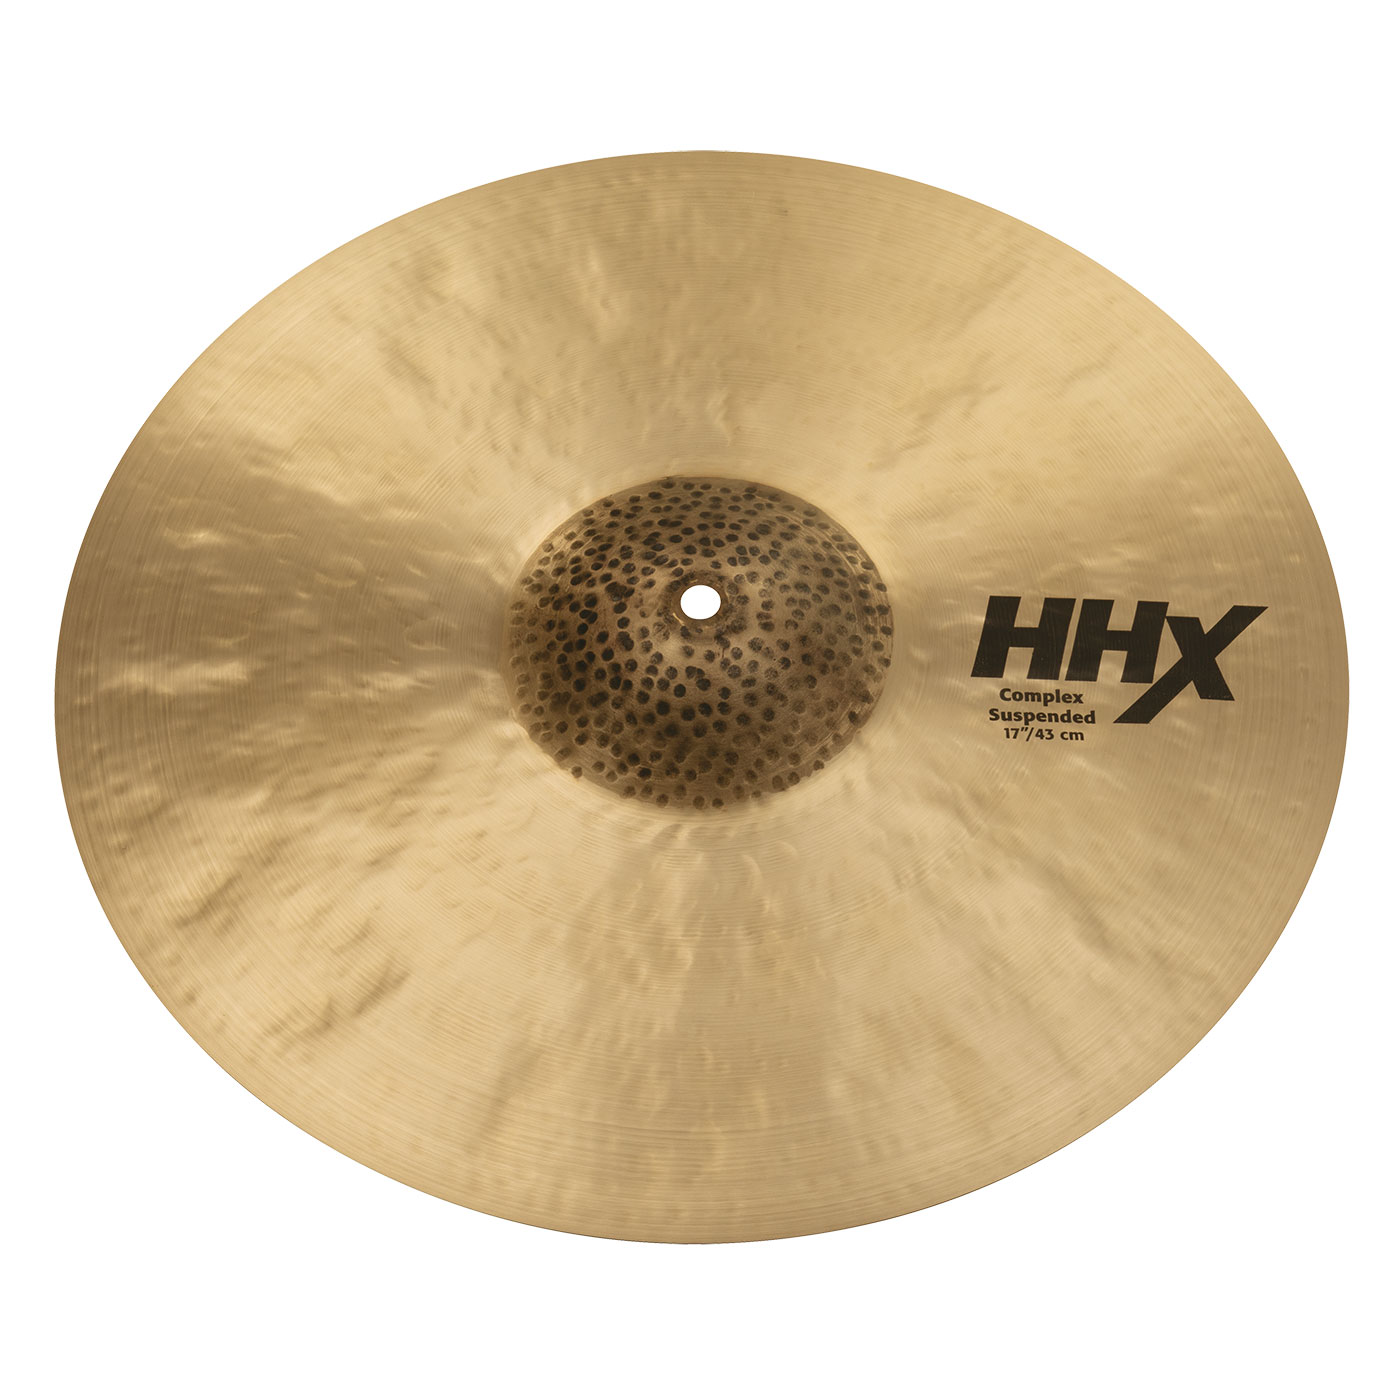 """Sabian 17"""" HHX Complex Suspended Cymbal"""